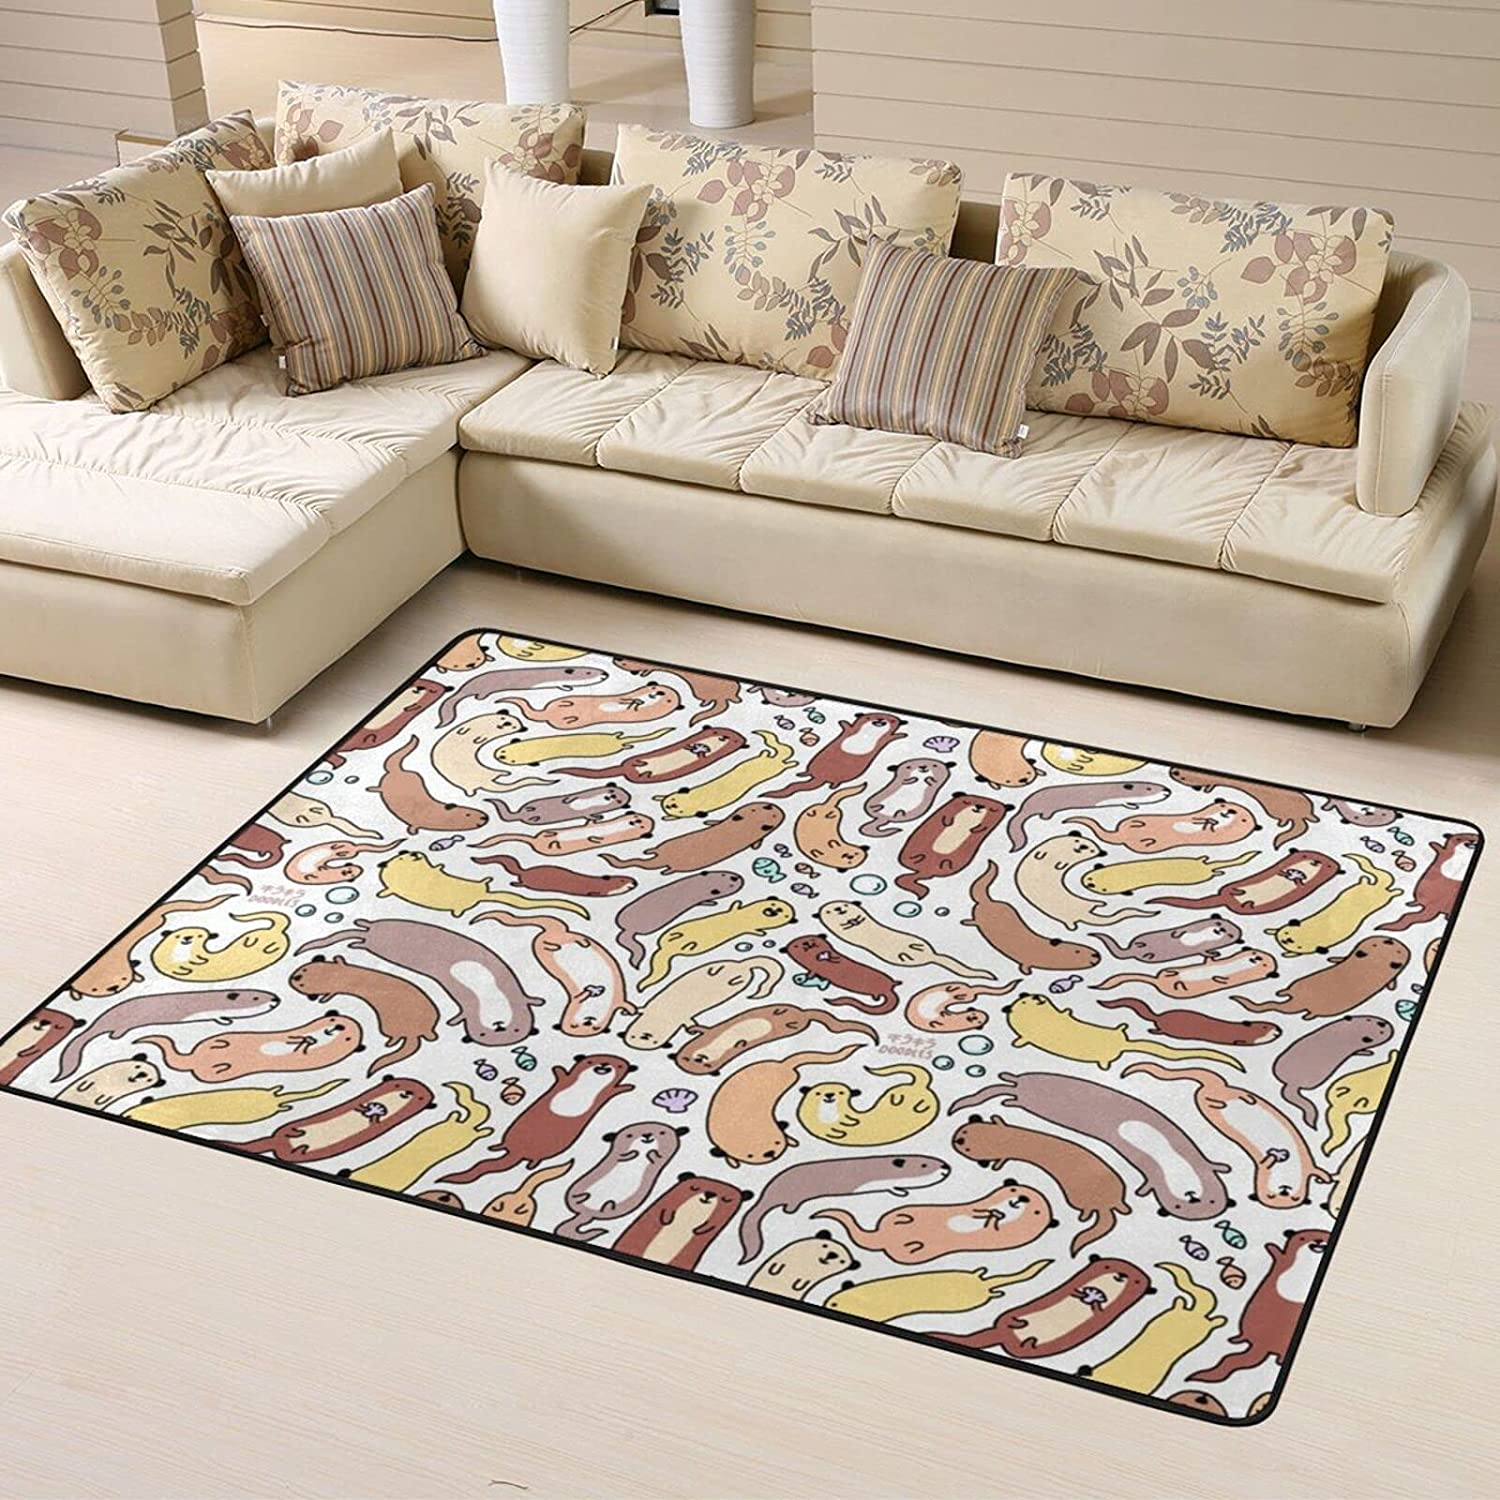 Funny Otter Translated Pattern Super Special SALE held Design Soft Area Rugs Roo for Bedroom Living